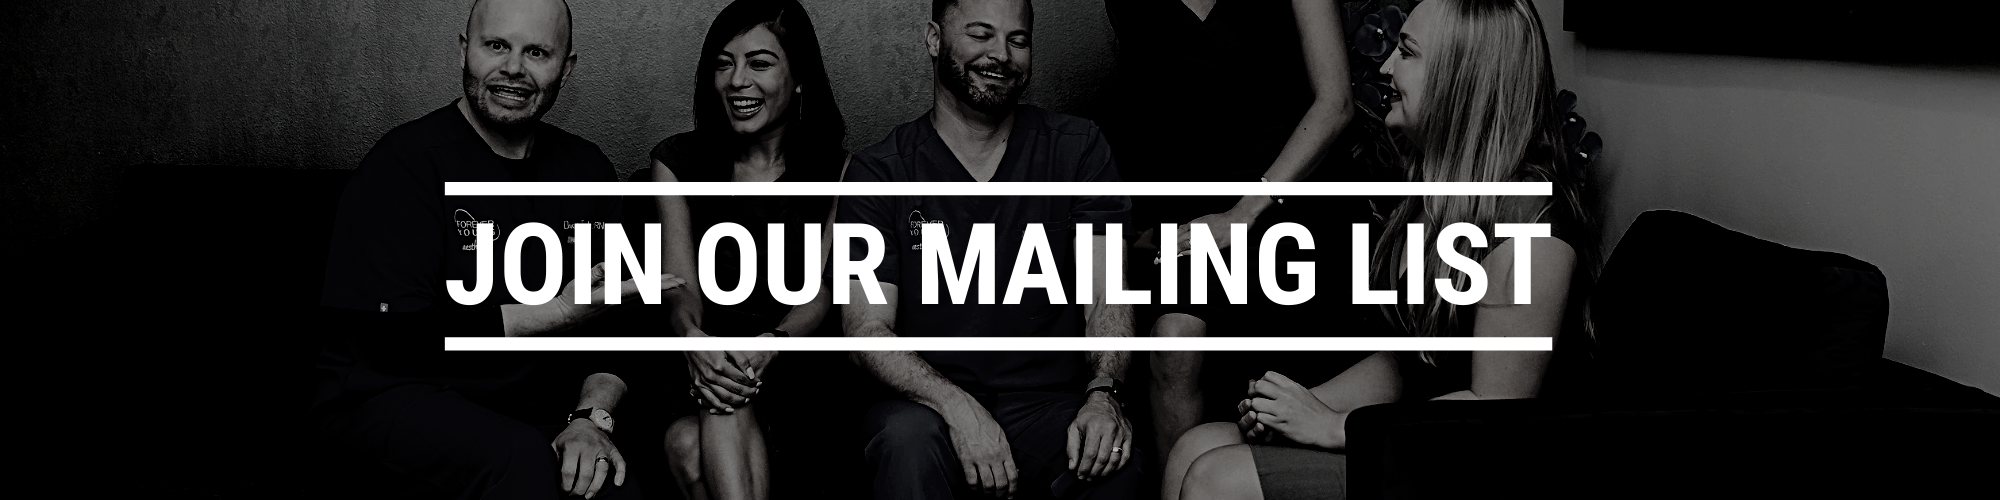 Mailing List for Medical Spa Forever Young Aesthetics in Tampa FL